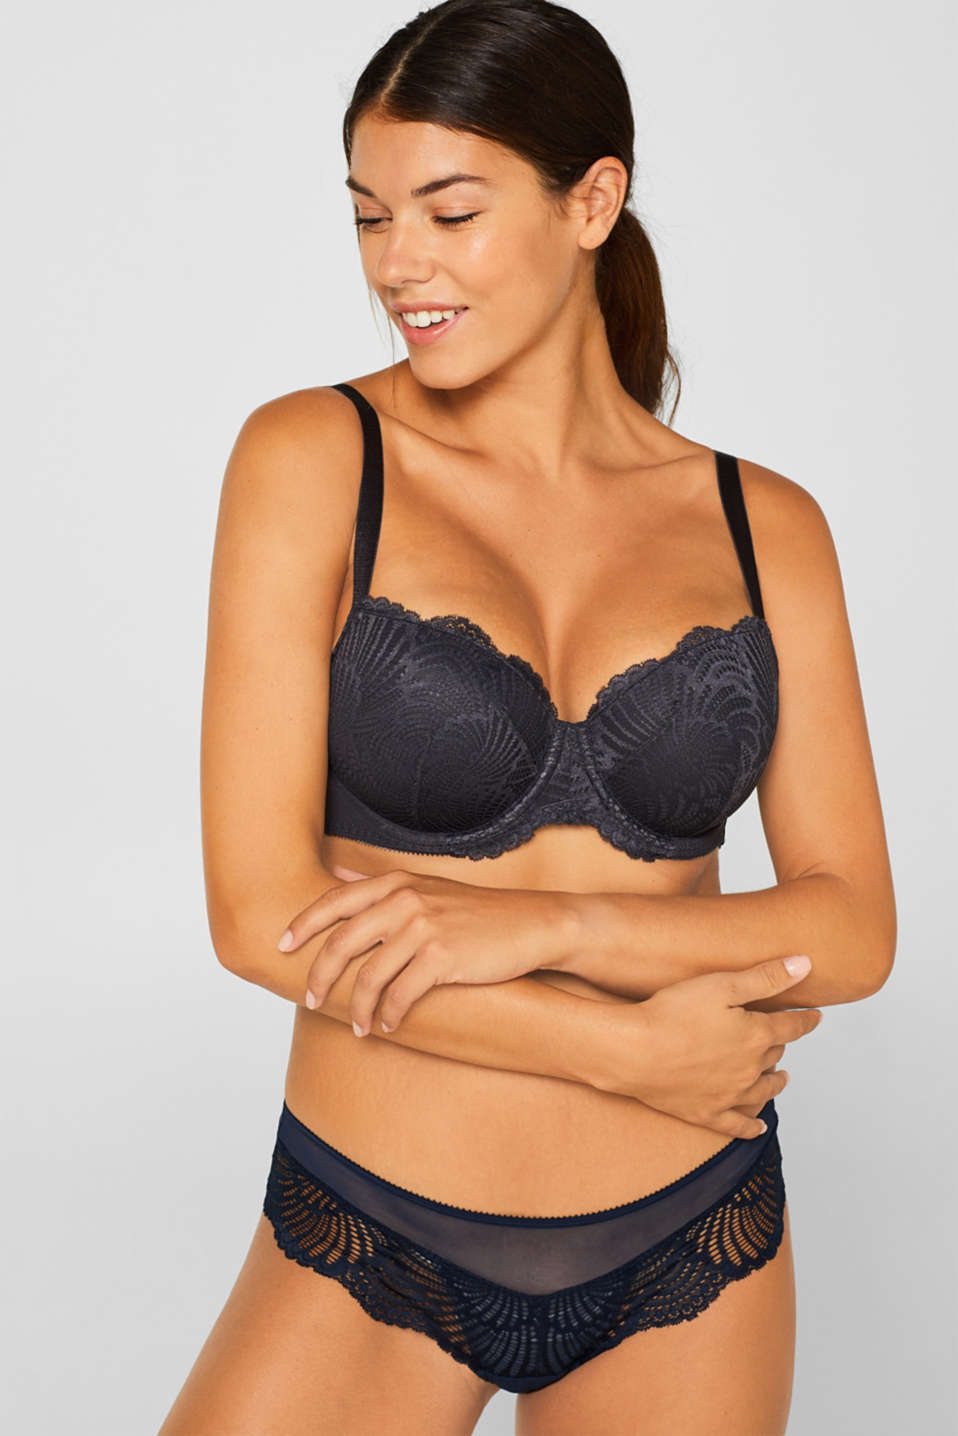 Padded, underwire bra for large cup sizes, ANTHRACITE, detail image number 0